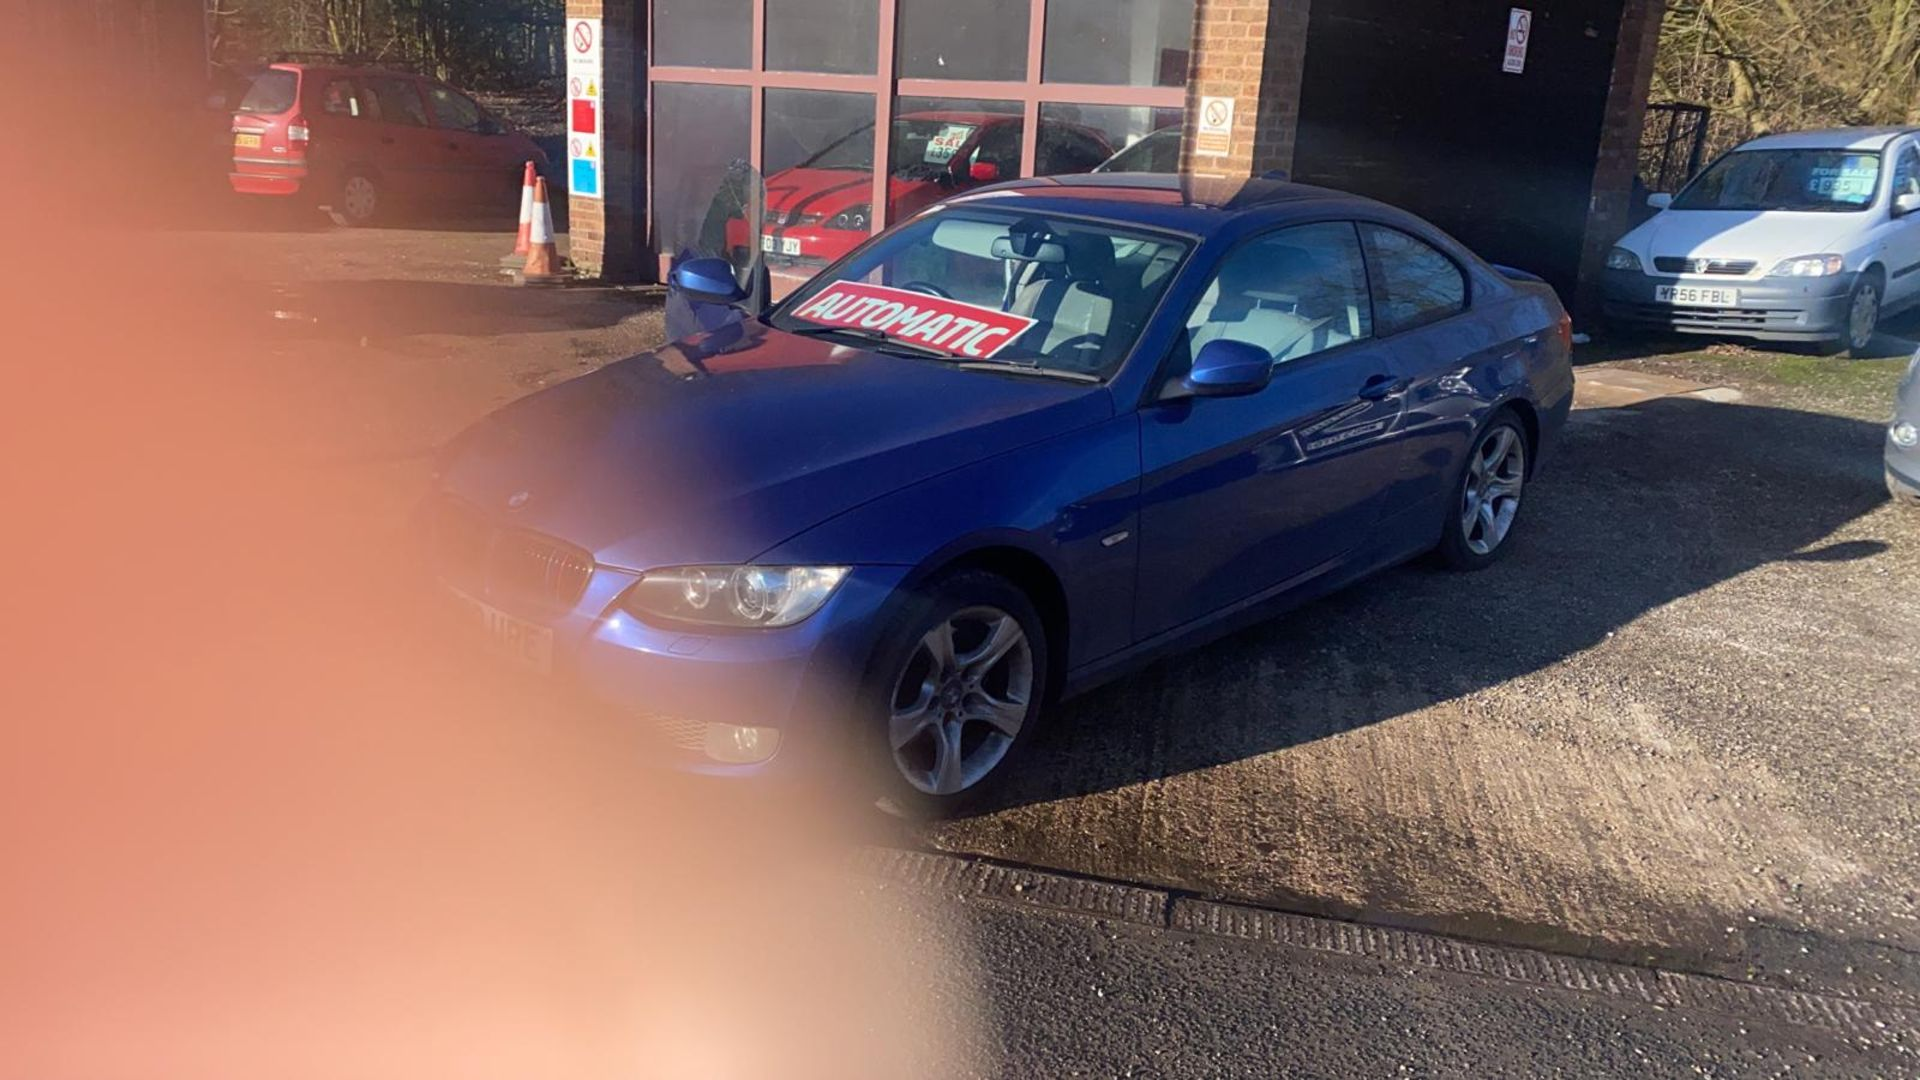 2010/60 REG BMW 320D SE AUTOMATIC 2.0 DIESEL BLUE COUPE 180 BHP *NO VAT* - Image 6 of 10